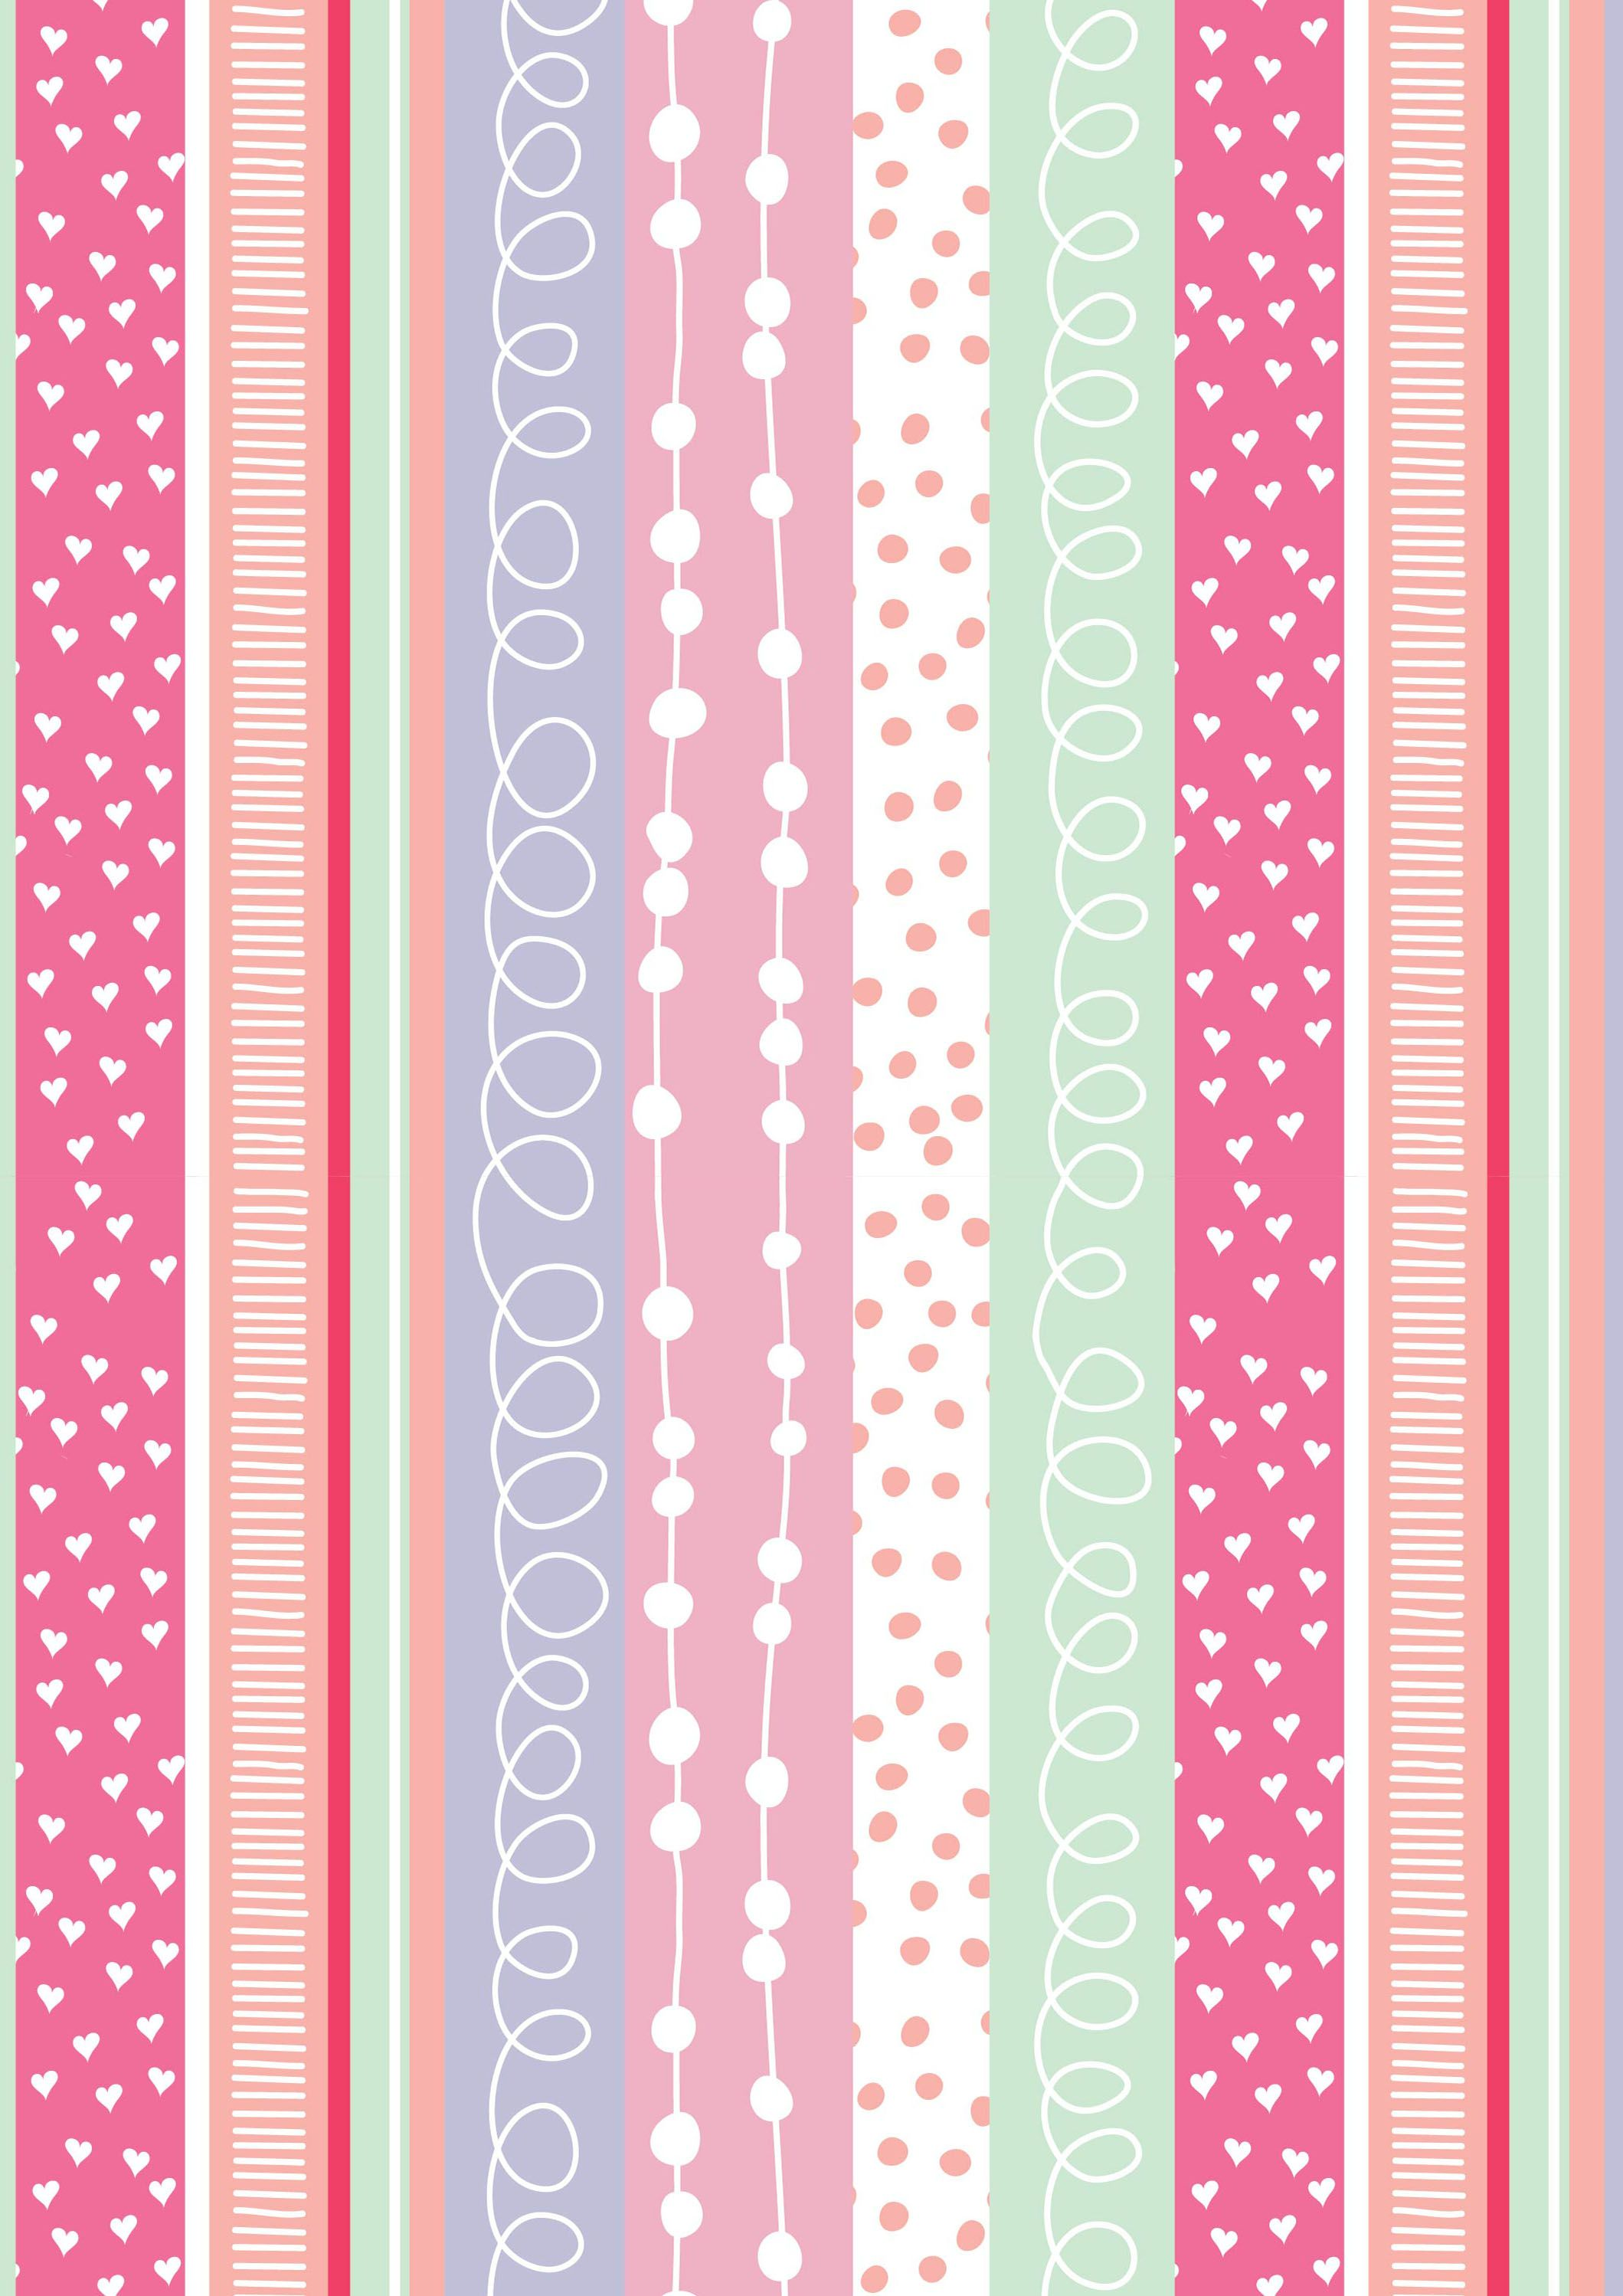 Scrapbook paper kawaii - Print It On Sticker Paper Can Use To Scrapbook